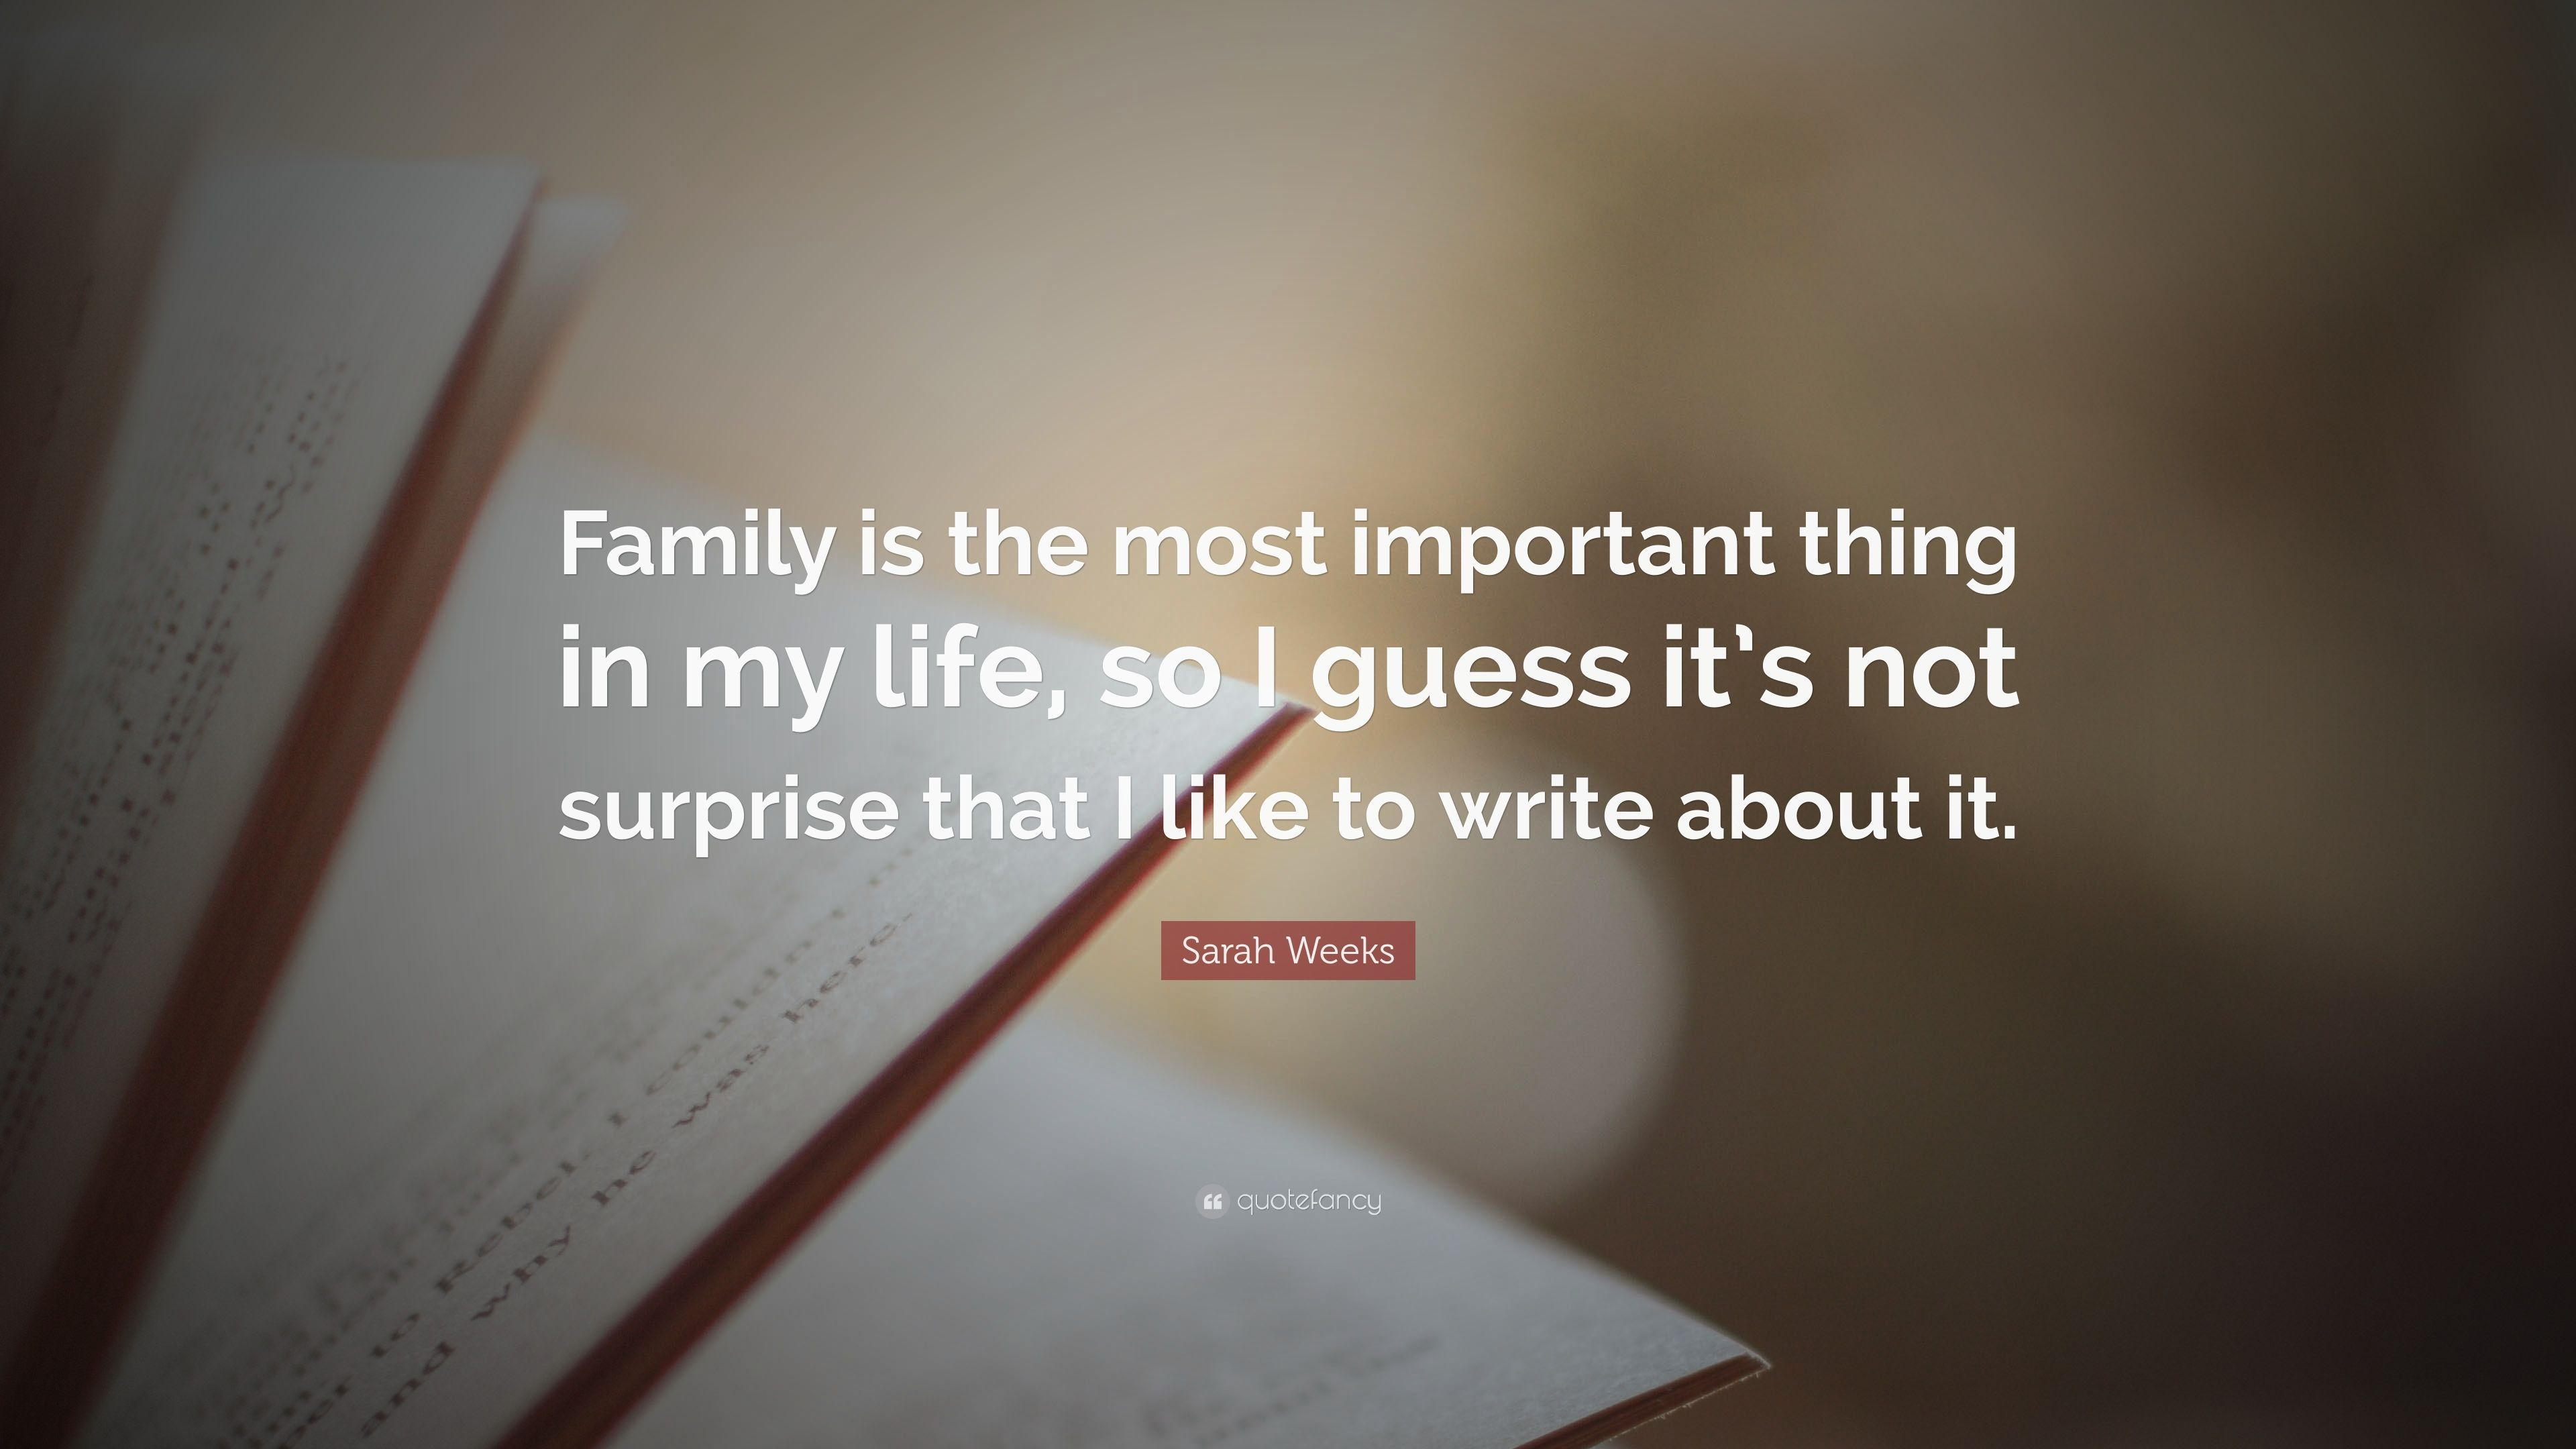 family is the most important thing in life essay Essay on importance of family - family is an important moral thing in the life it's the place where every achievement starts the presence of the family is necessary for the development of civilizations too (scholasticus, 2011.